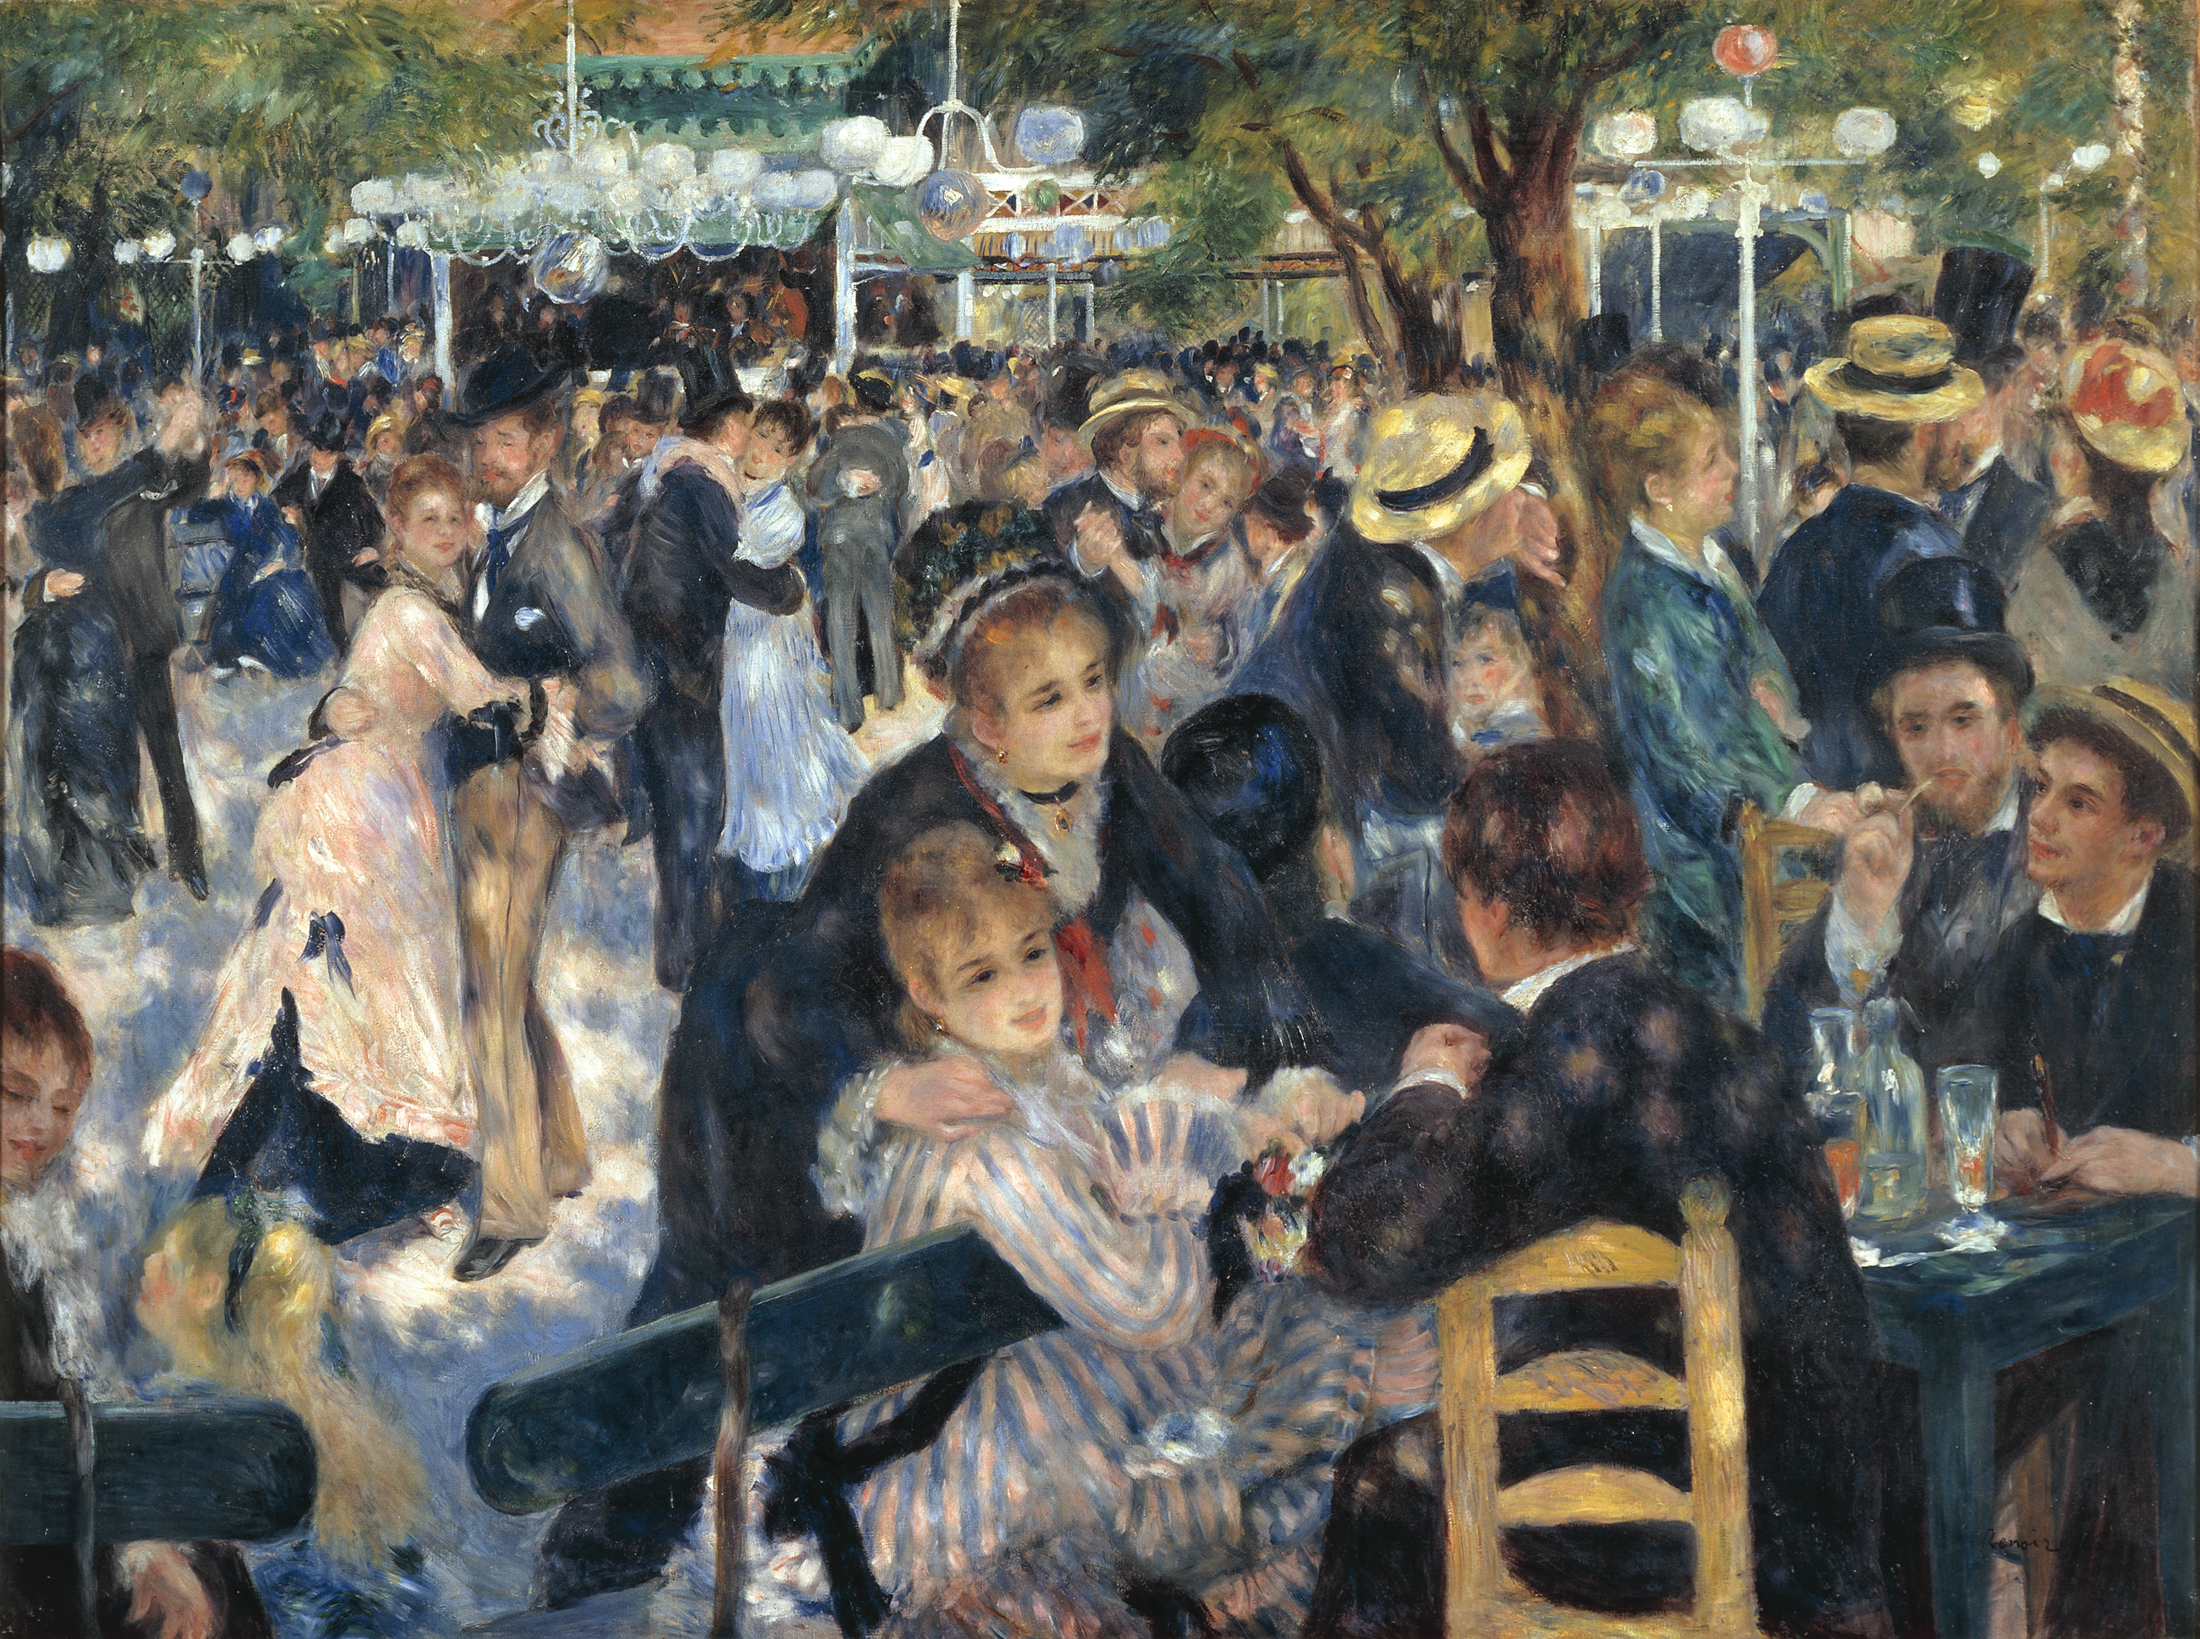 Auguste Renoir - Dance at Le Moulin de la Galette